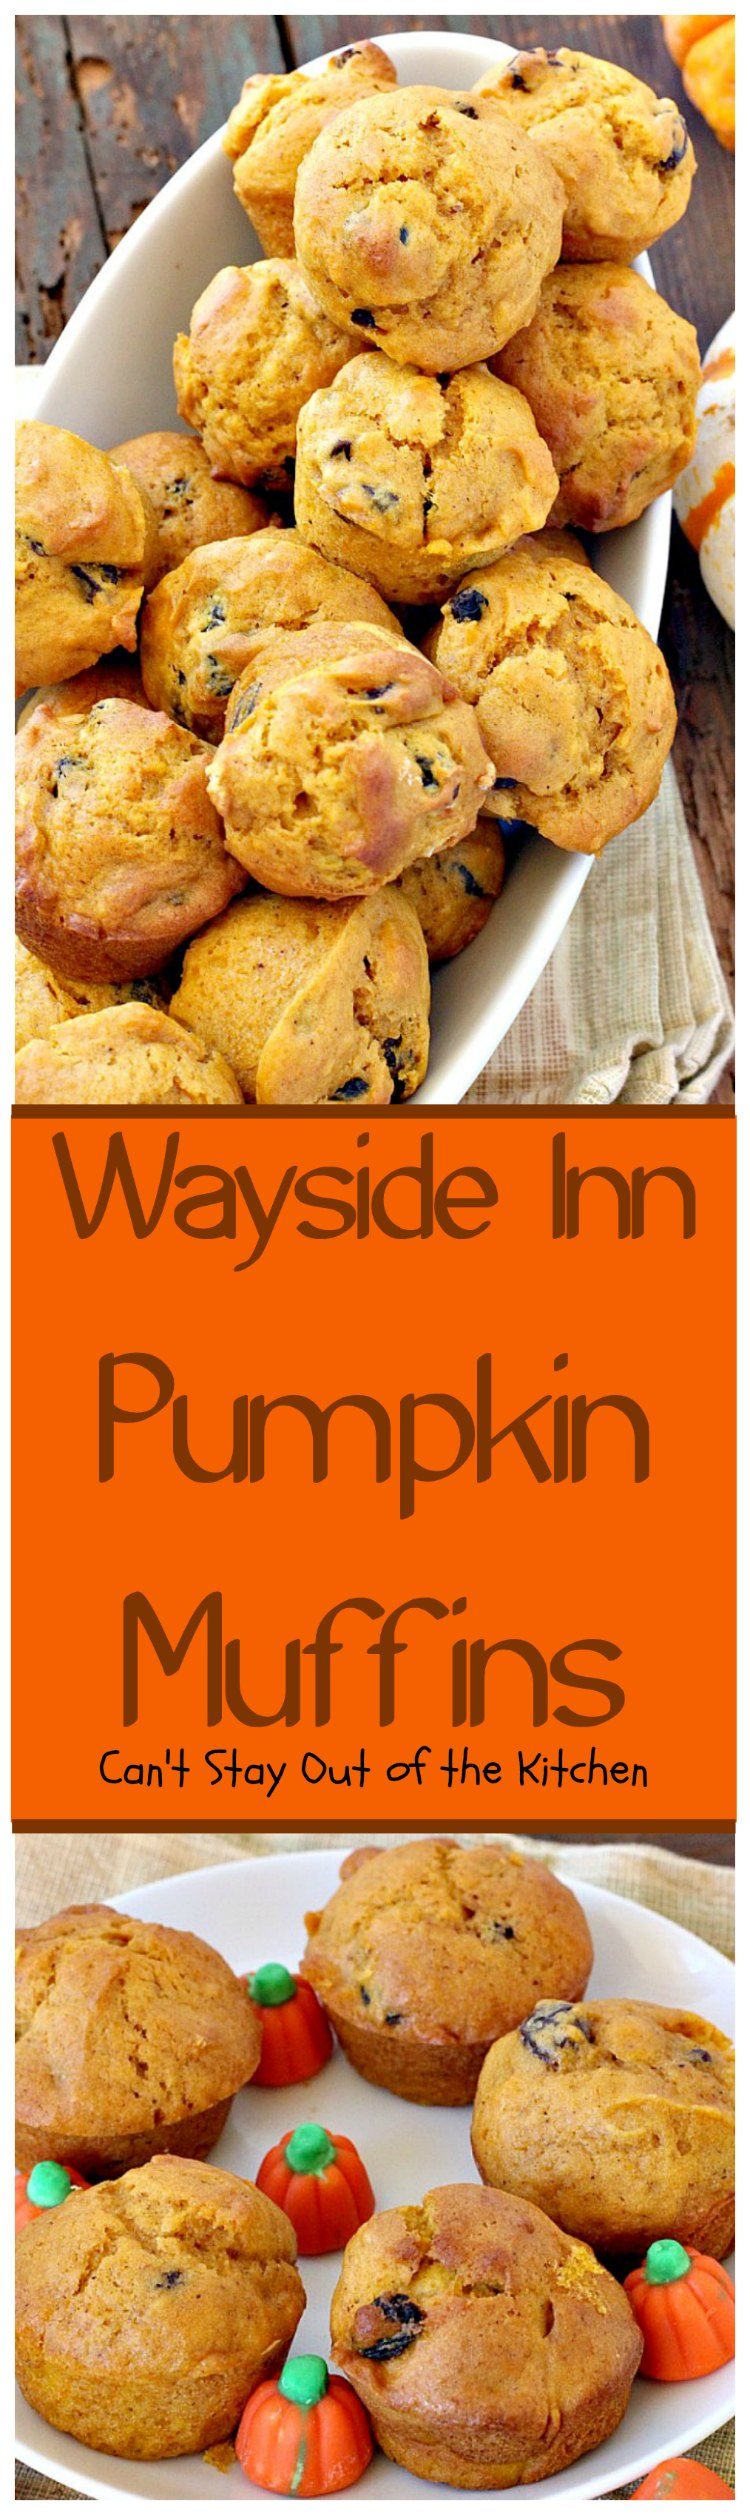 Wayside Inn Pumpkin Muffins | Can't Stay Out of the Kitchen | these fabulous #muffins are served at the historic Longellow's Wayside Inn in Sudbury, Massachusetts. Great for a #holiday #breakfast. #pumpkin #raisins